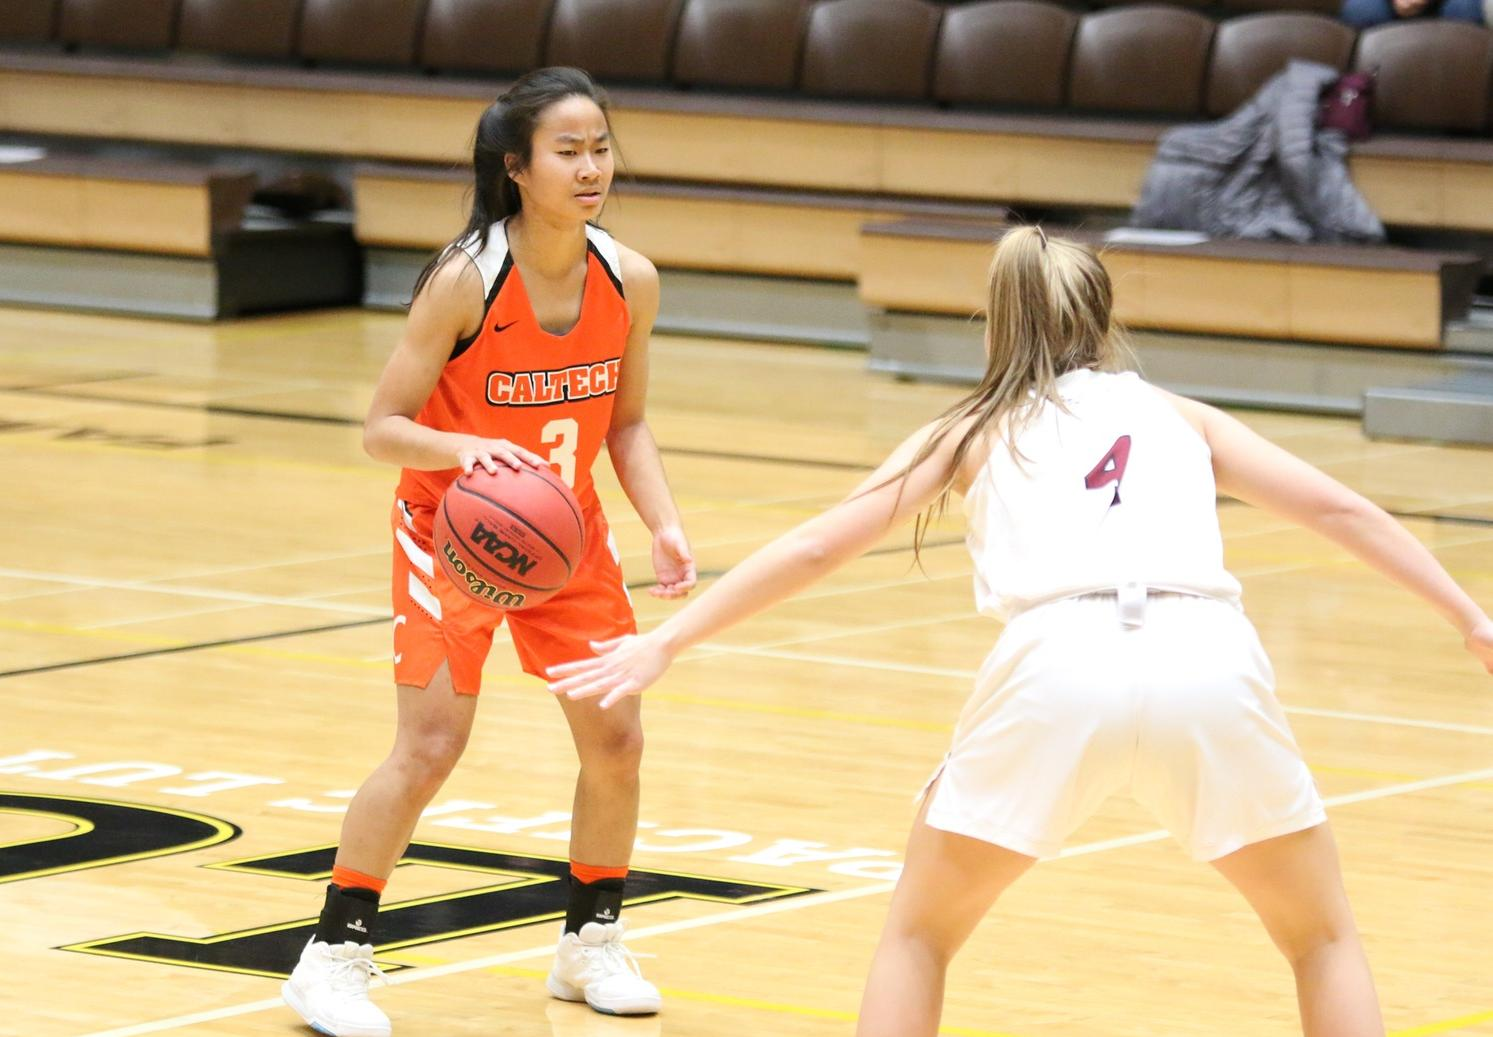 Beavers Fall to Firebirds in Thrilling Opener